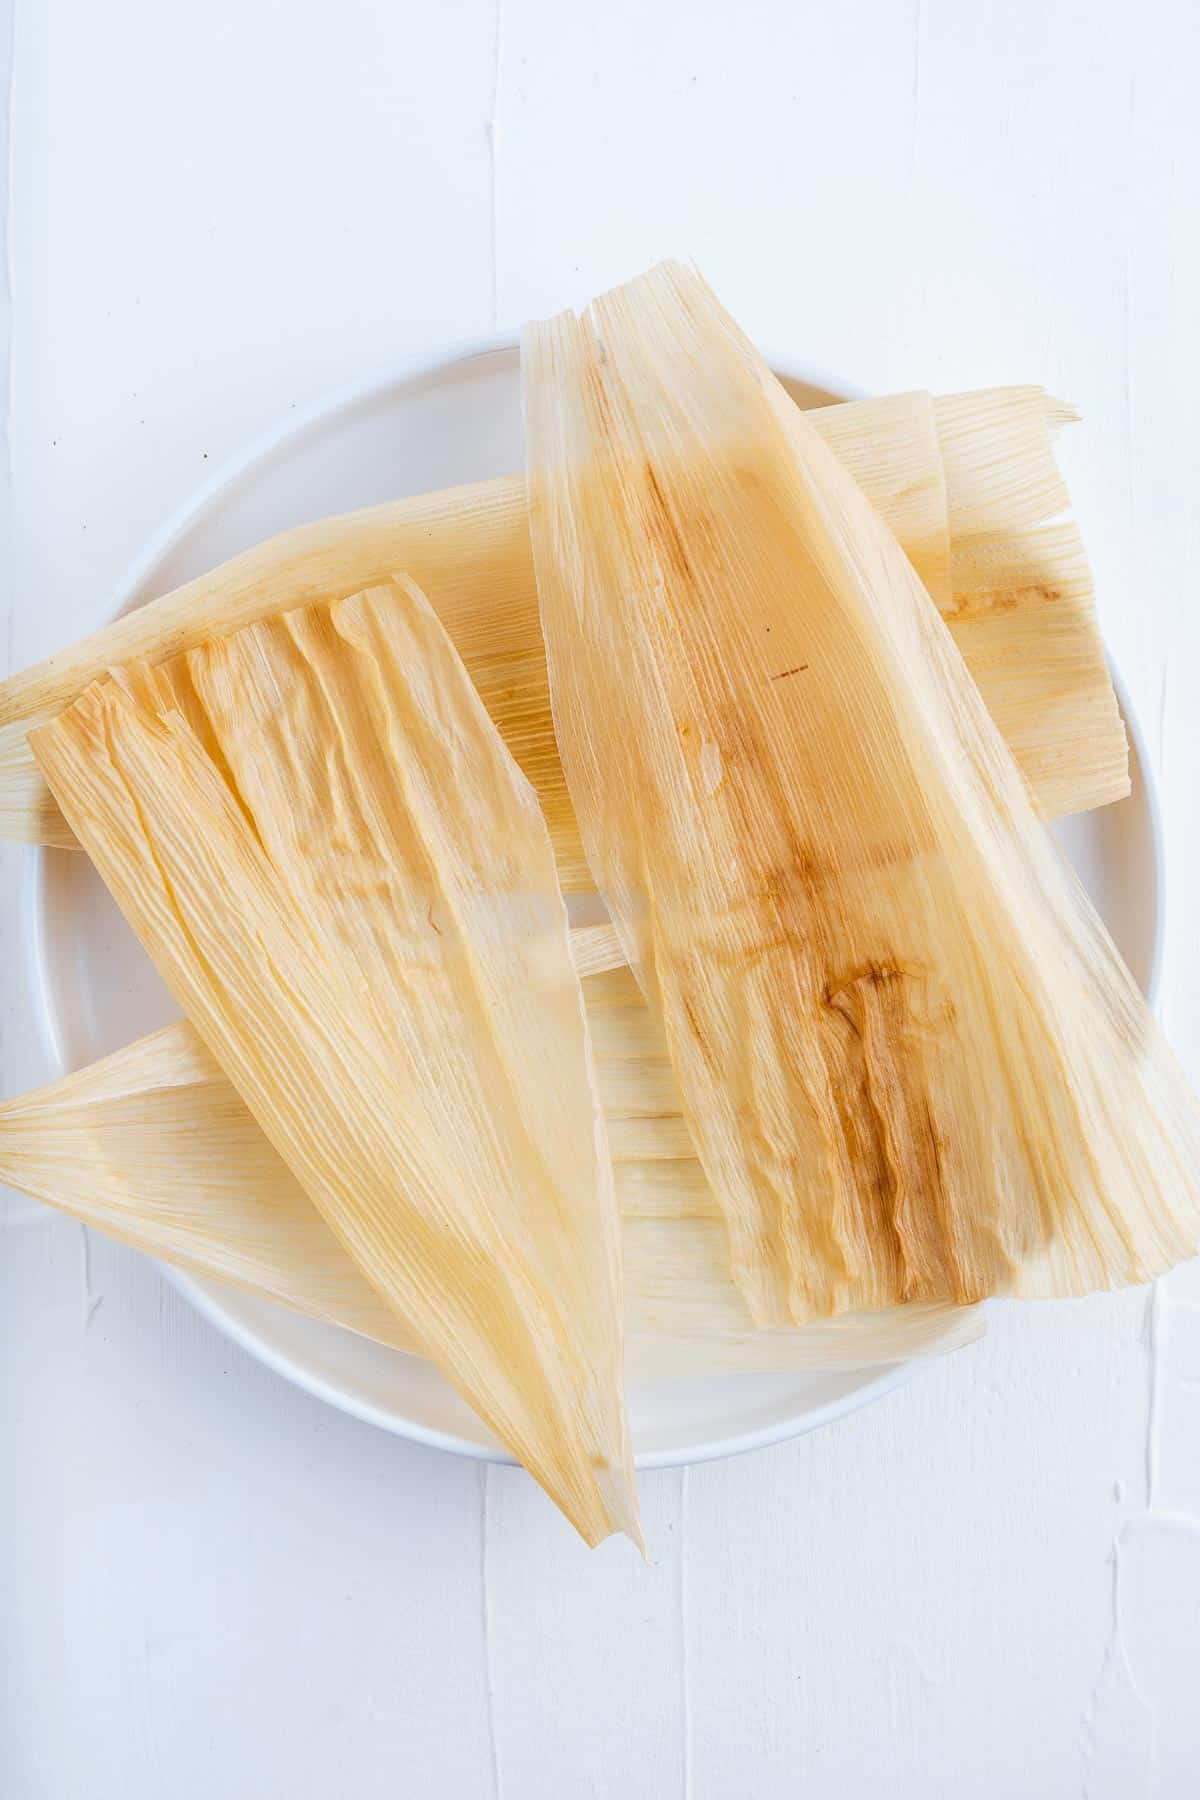 Corn Husks on a Plate